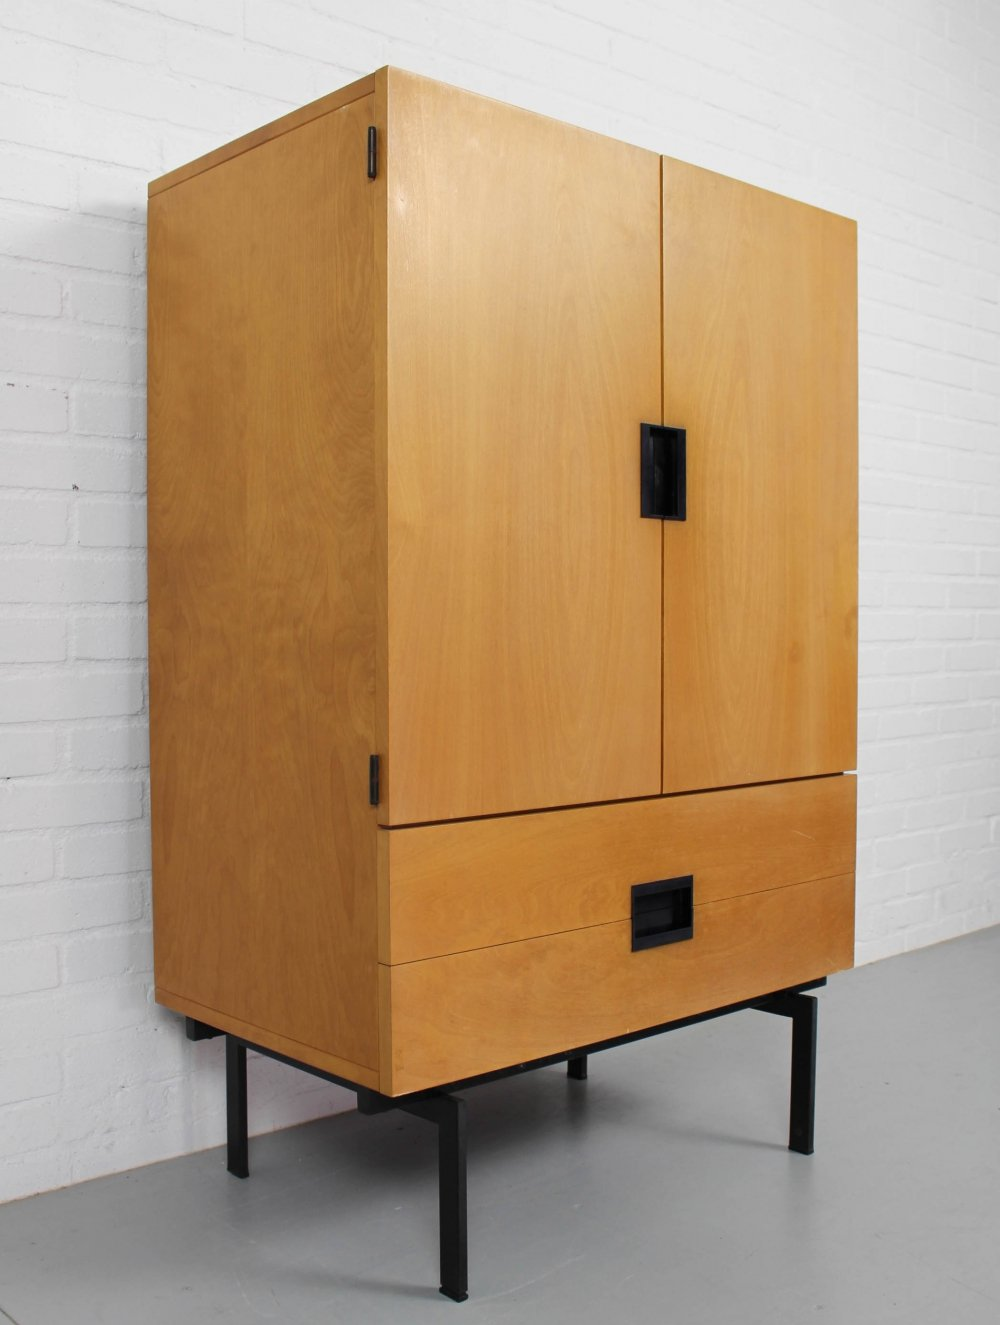 Japanese series birch cabinet CU03 by Cees Braakman for Pastoe, 1950s